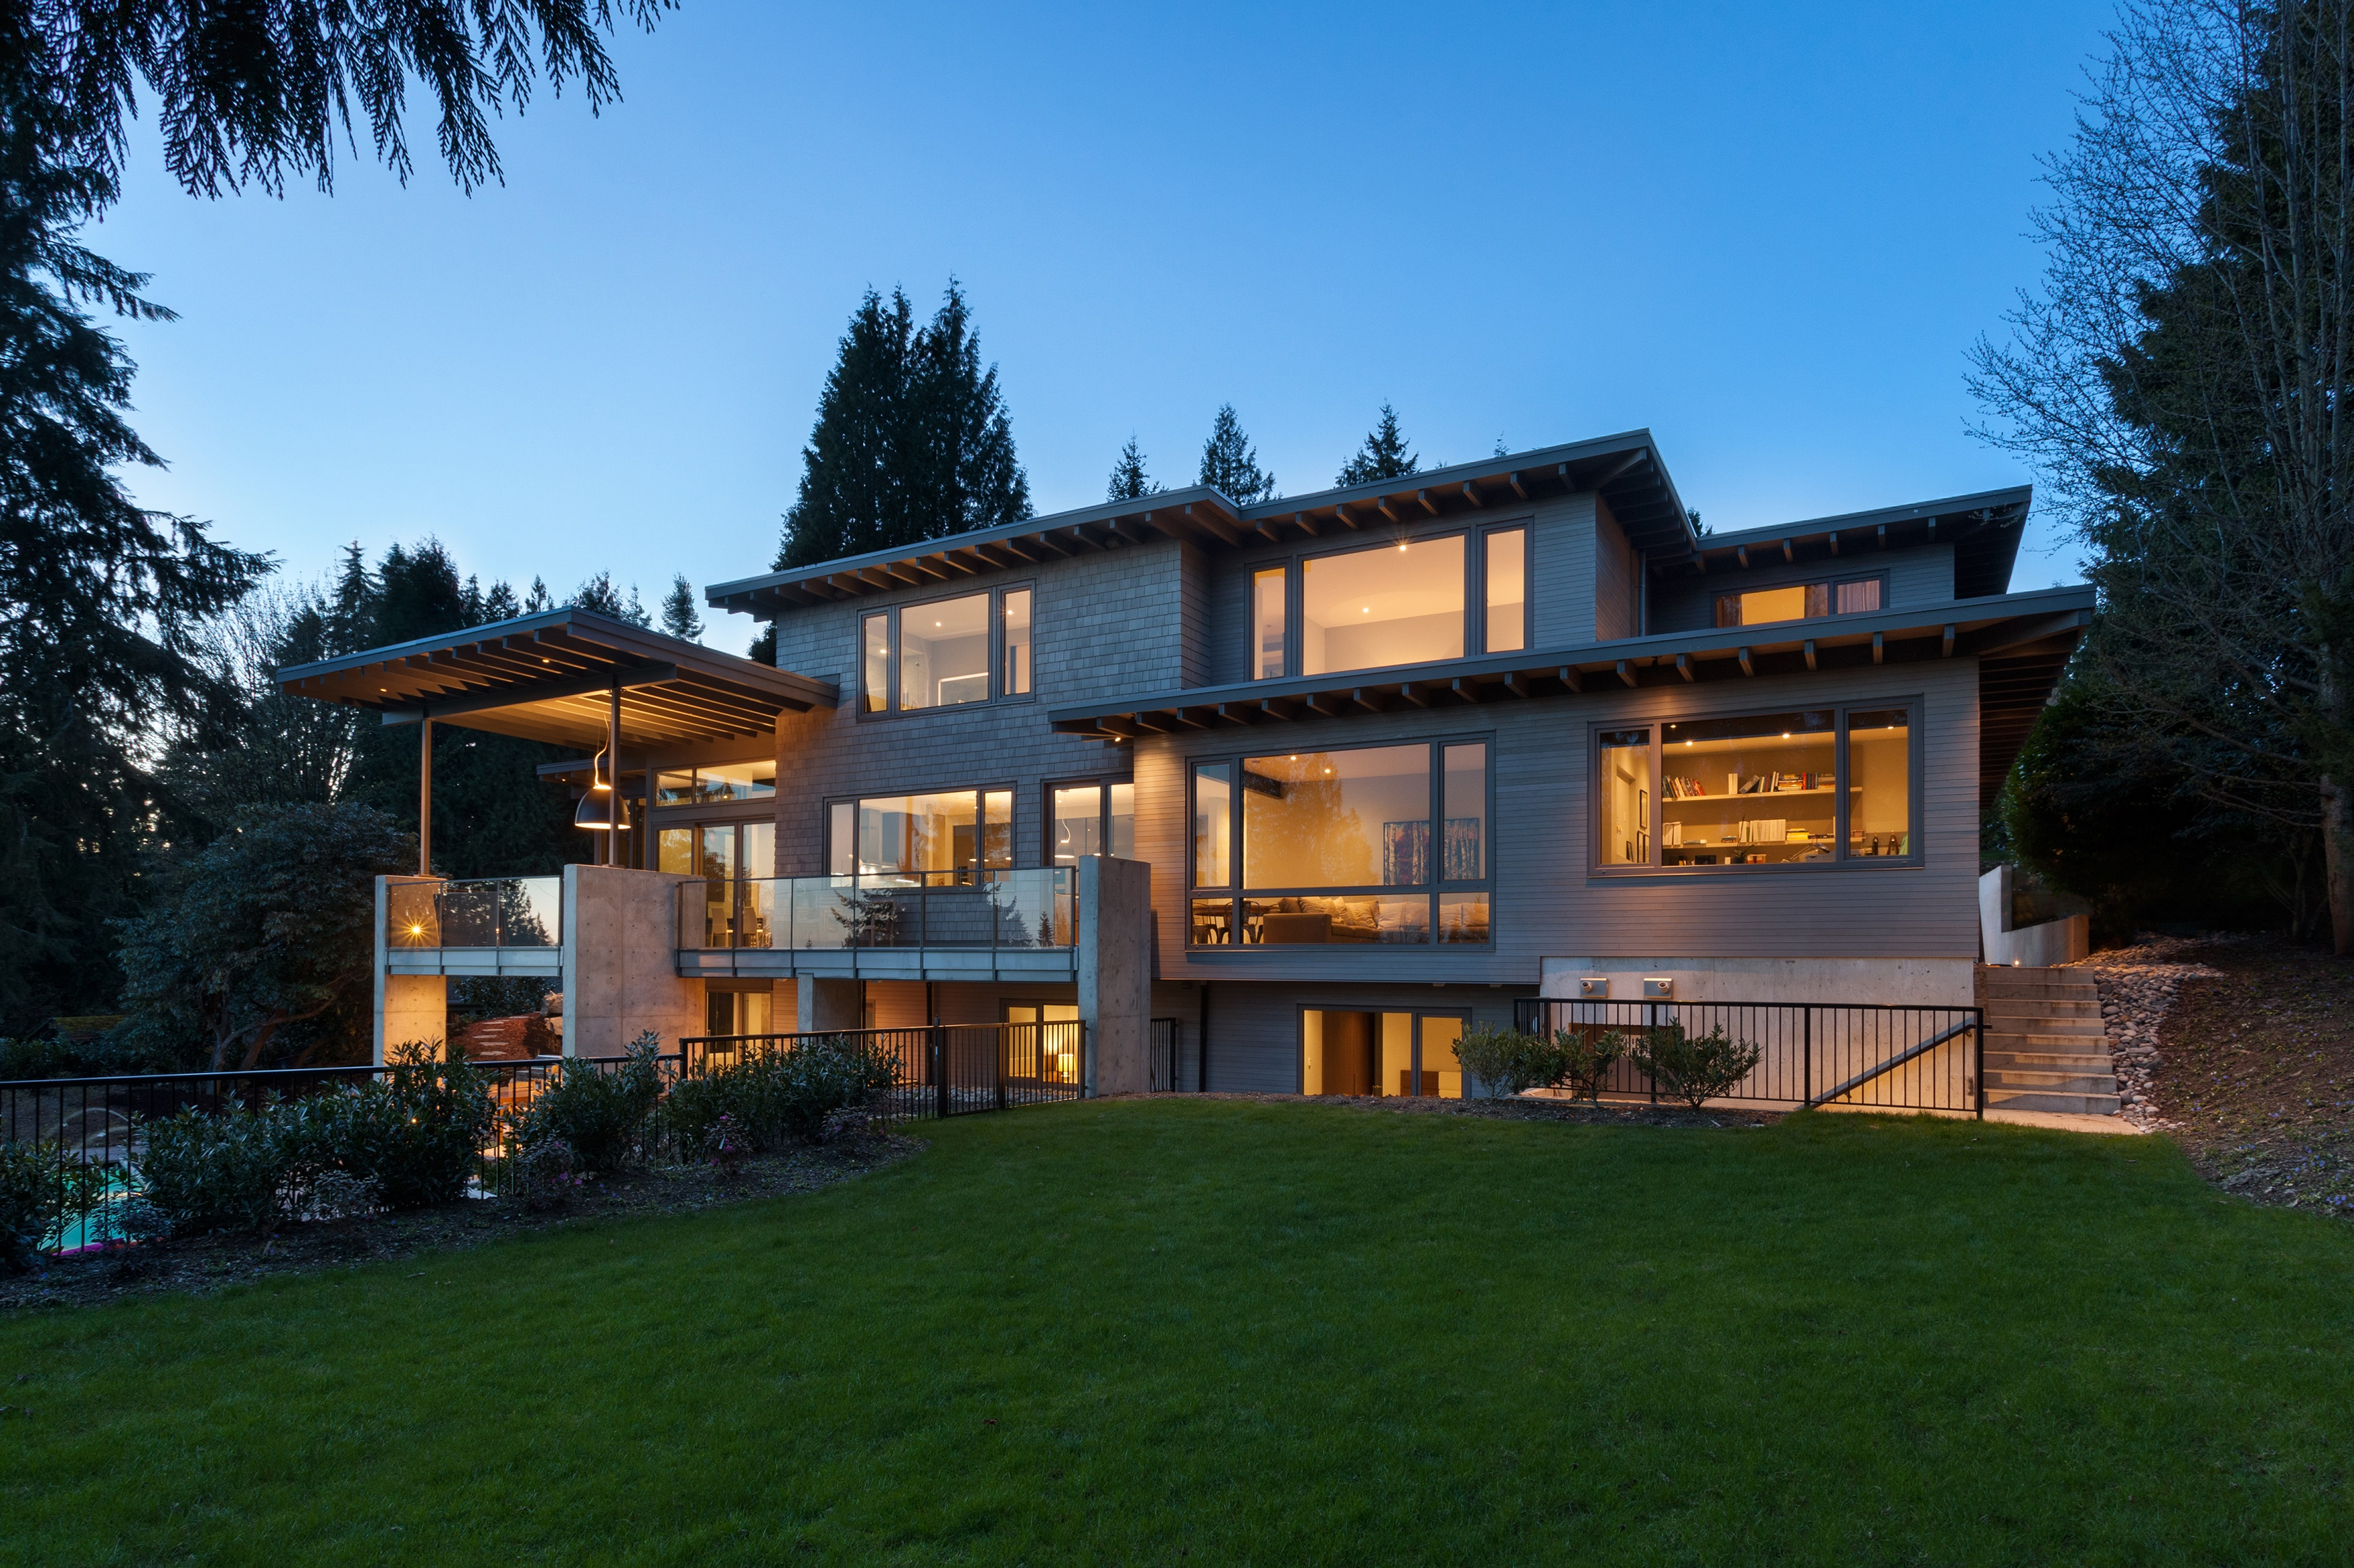 Annual Tour Of Modern Homes Returns To Vancouver, September 17